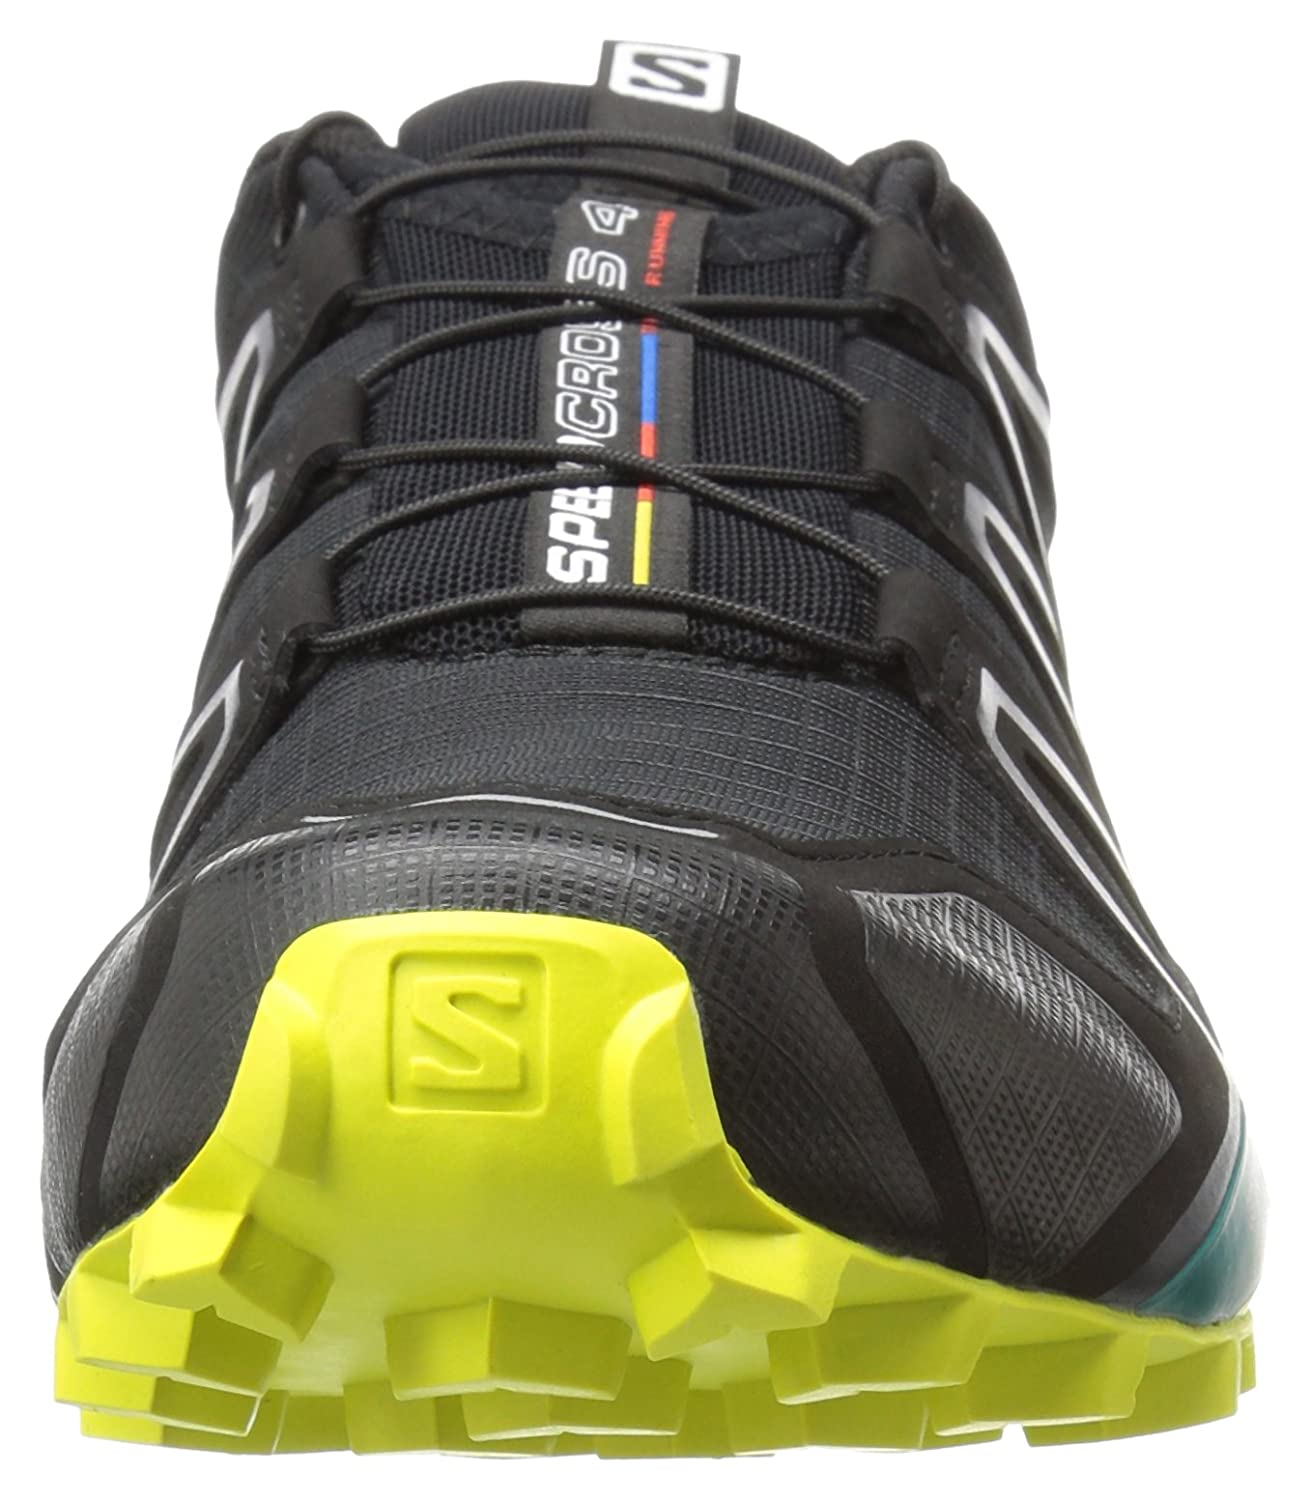 Salomon Men's Speedcross 4 Trail US|Black/Everglade/Sulphur Runner B01HD62NUI 11 M US|Black/Everglade/Sulphur Trail 45a590